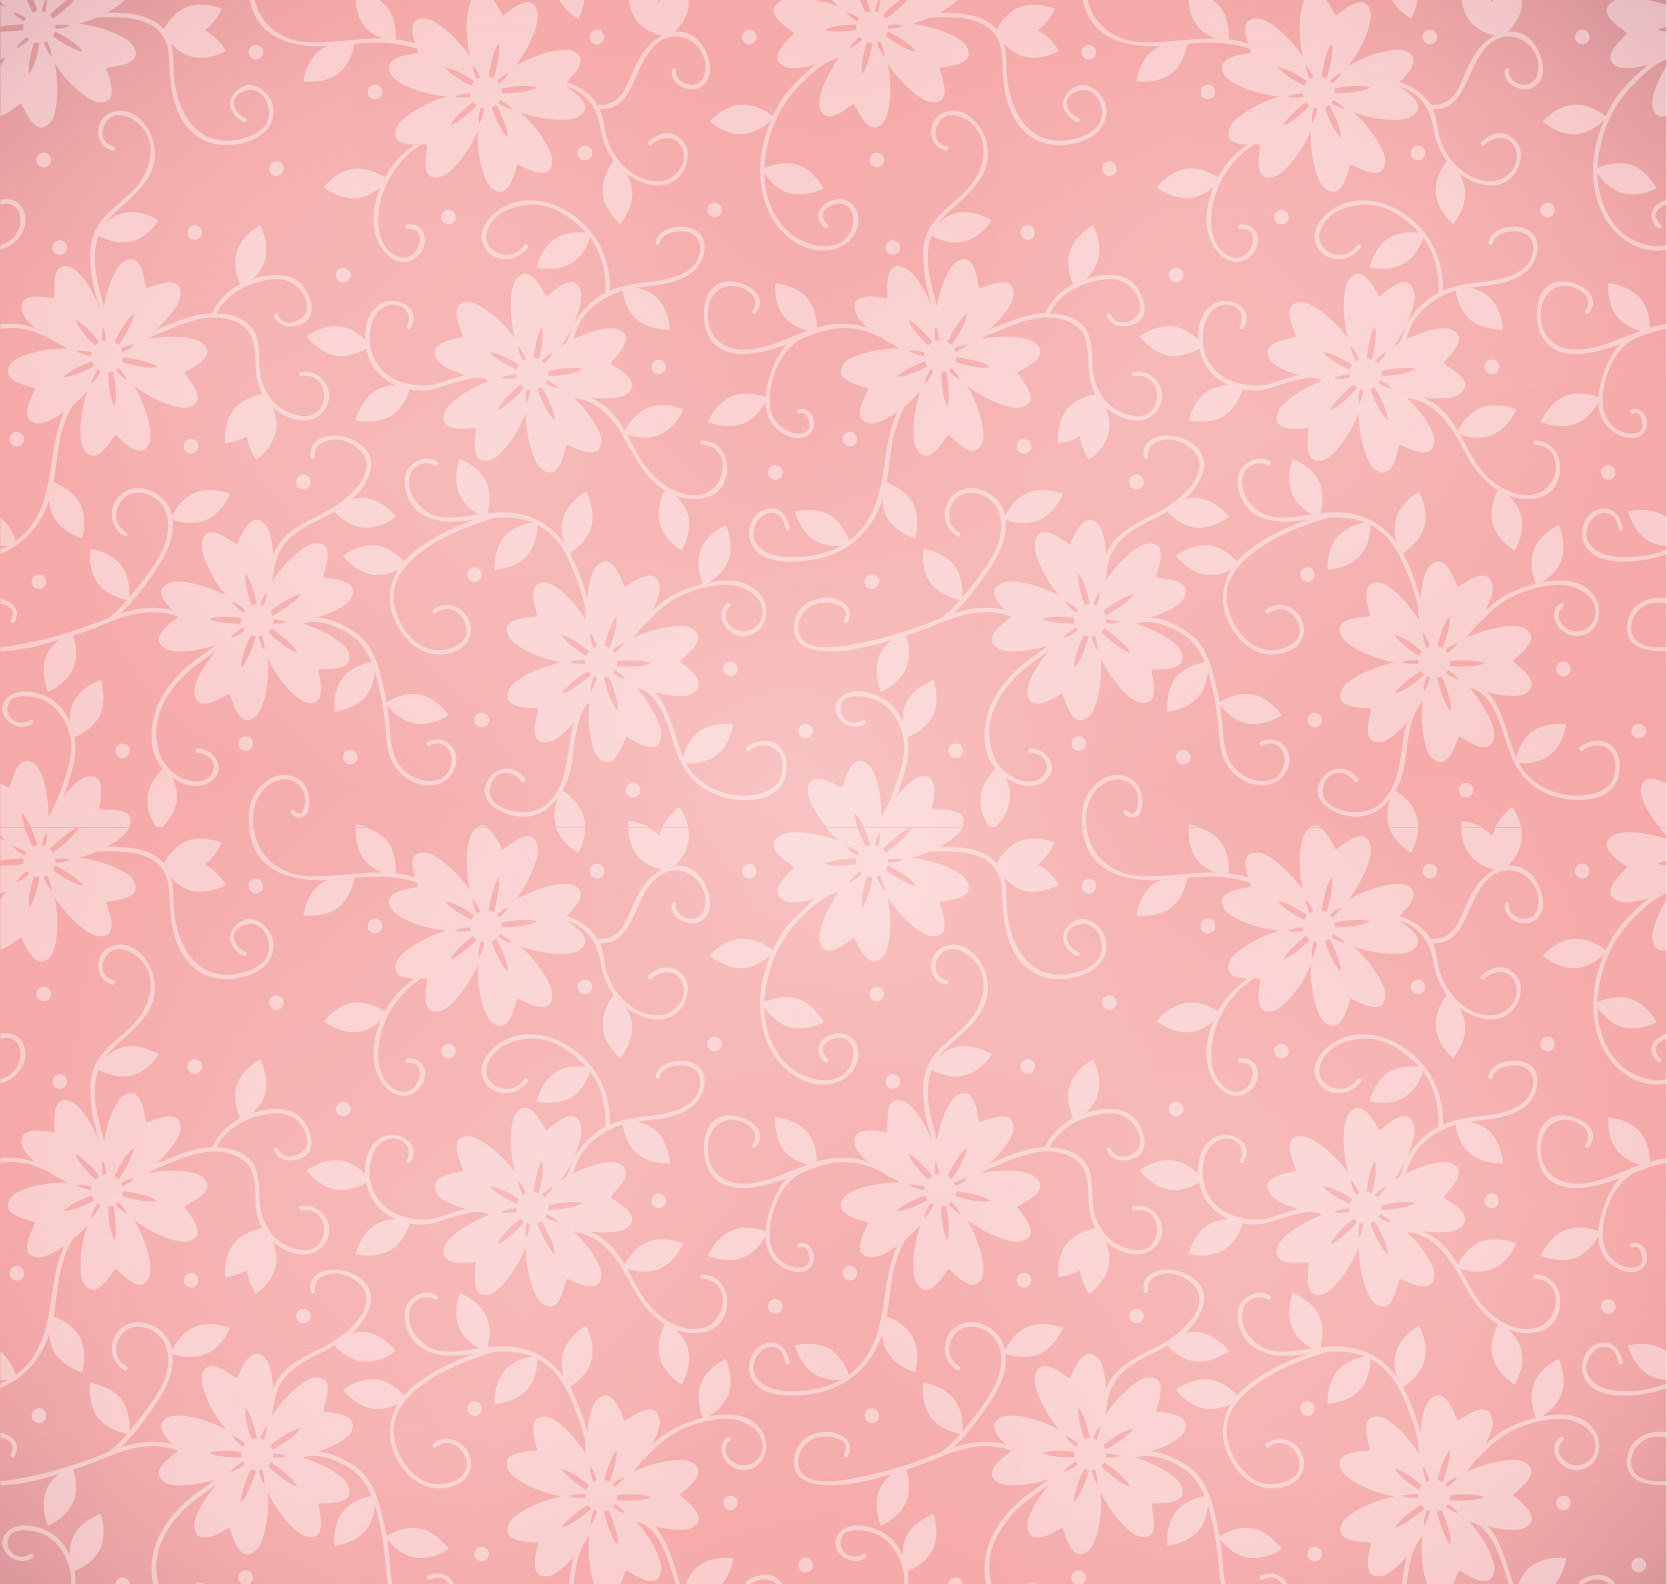 Elegant High Res Pink Floral Pattern